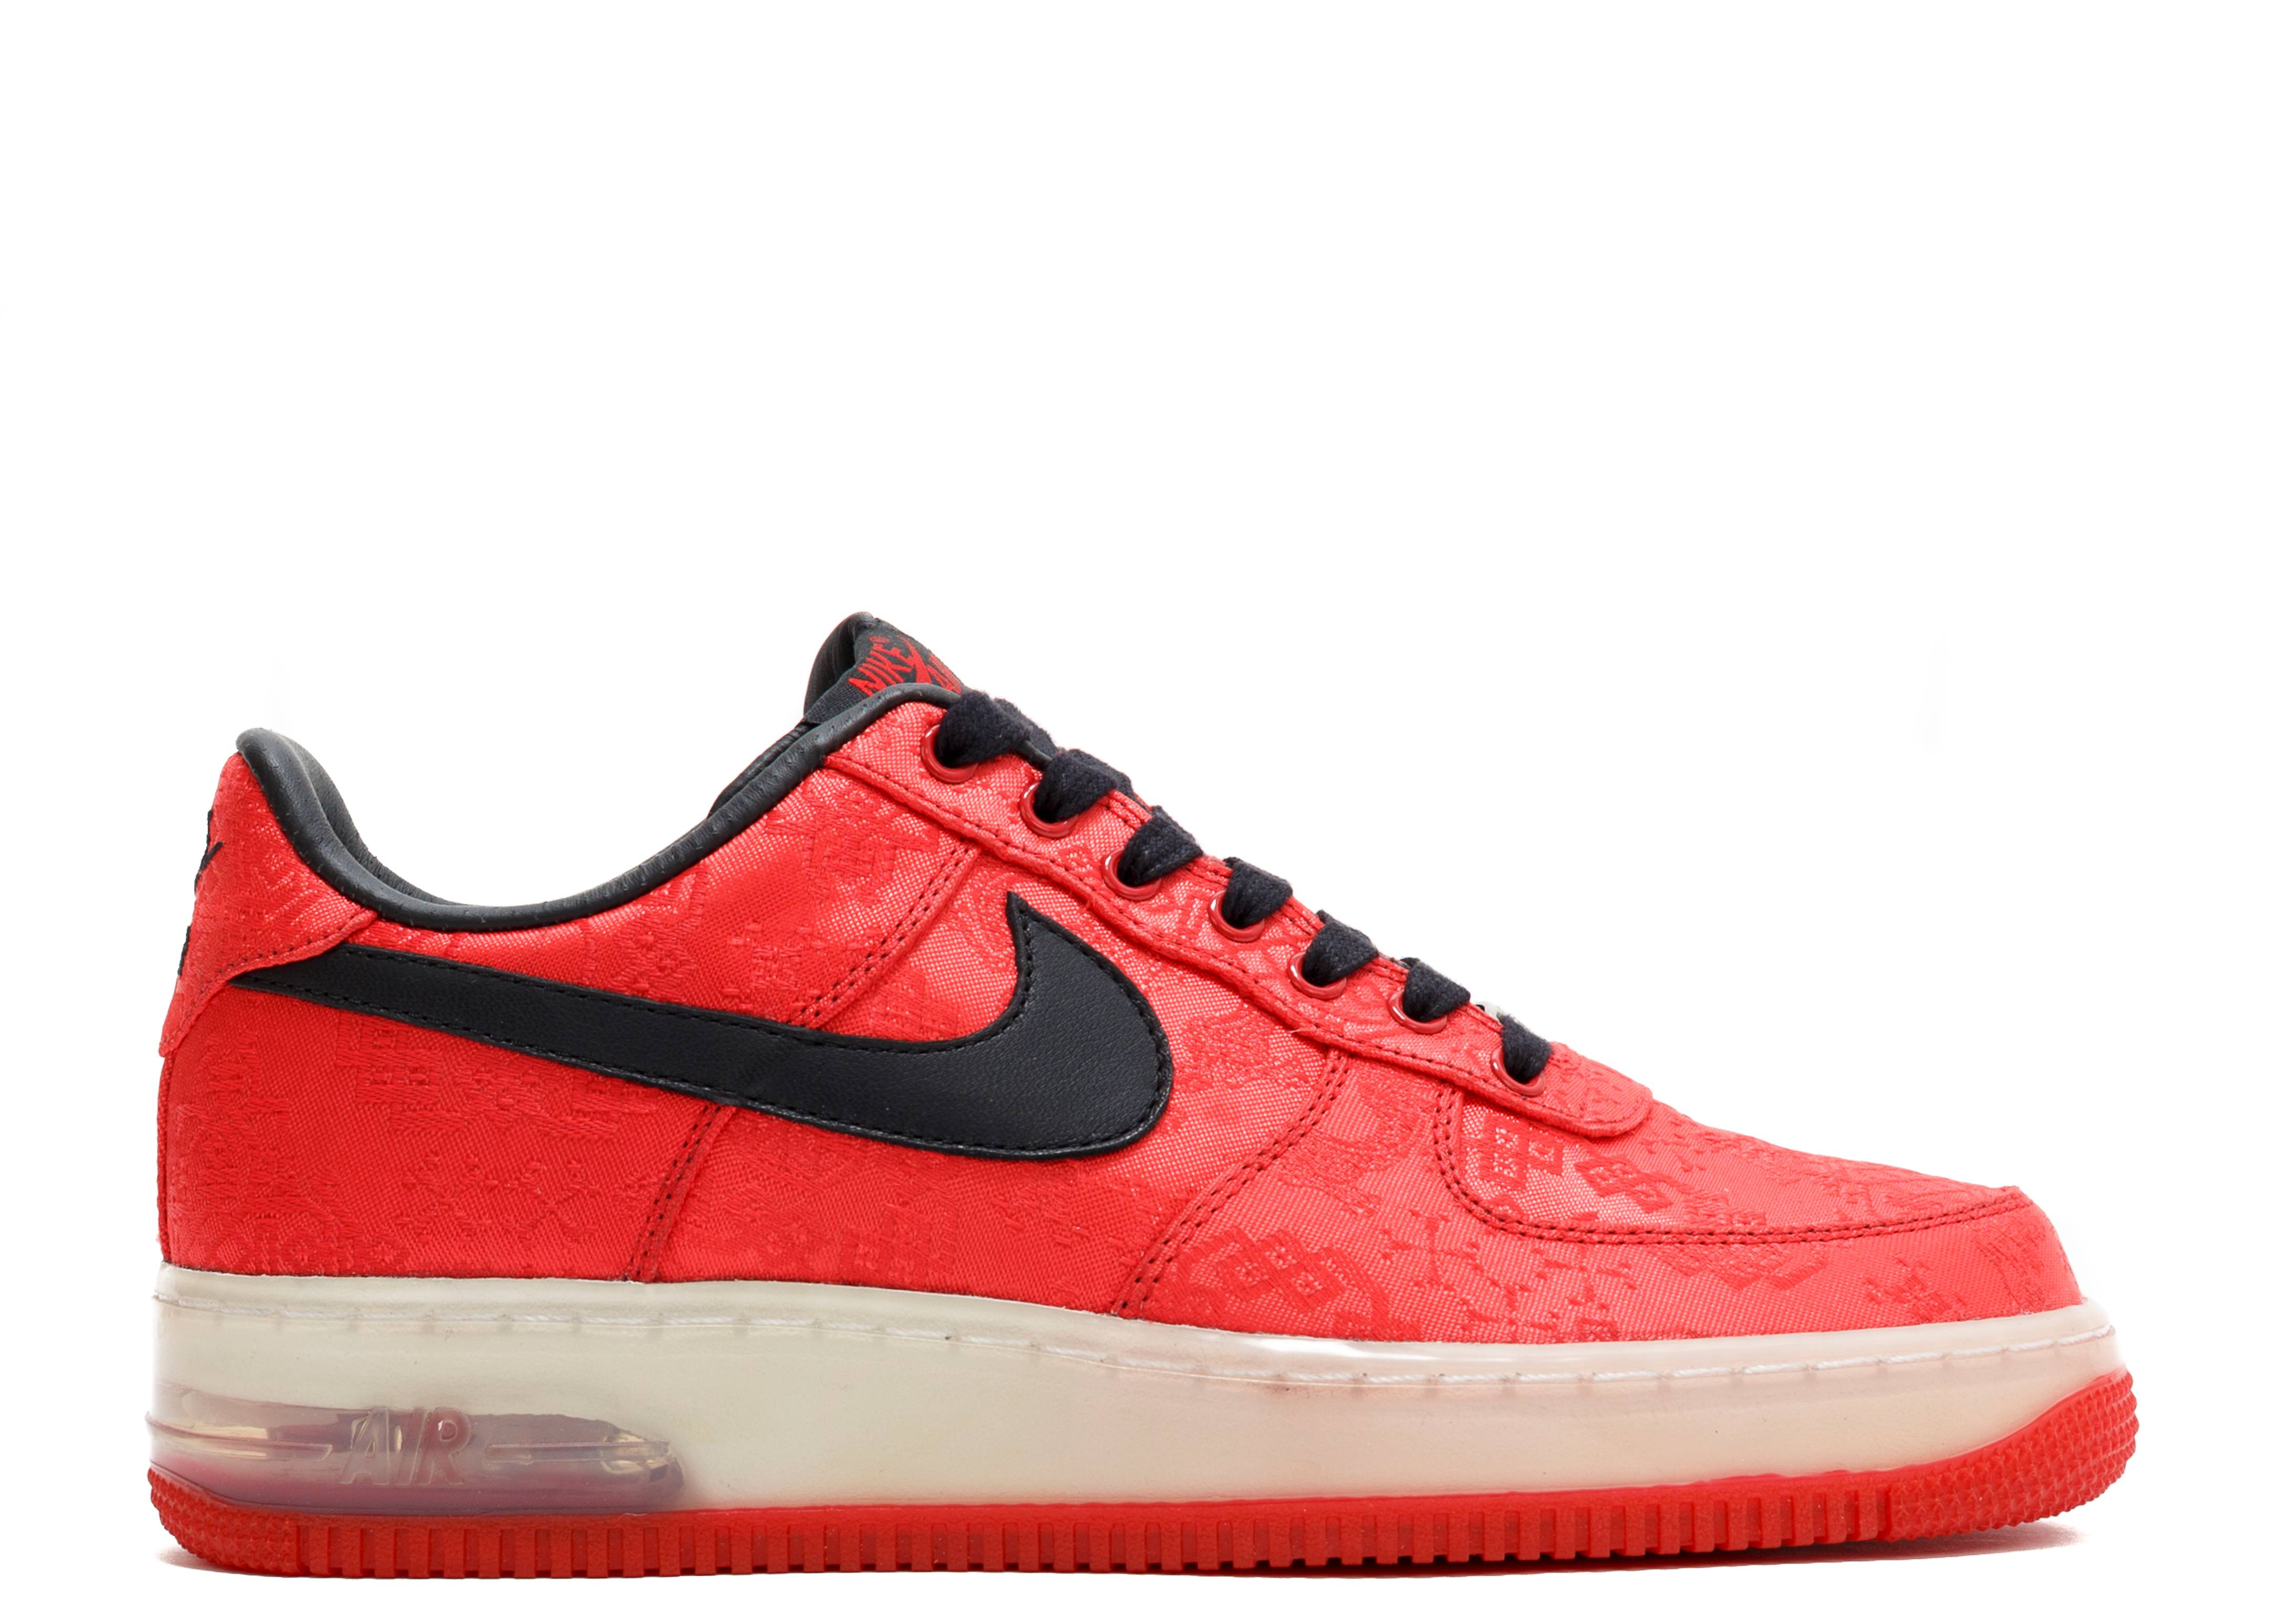 CLOT x Air Force 1 Supreme TZ 'Chinese Candy Box'